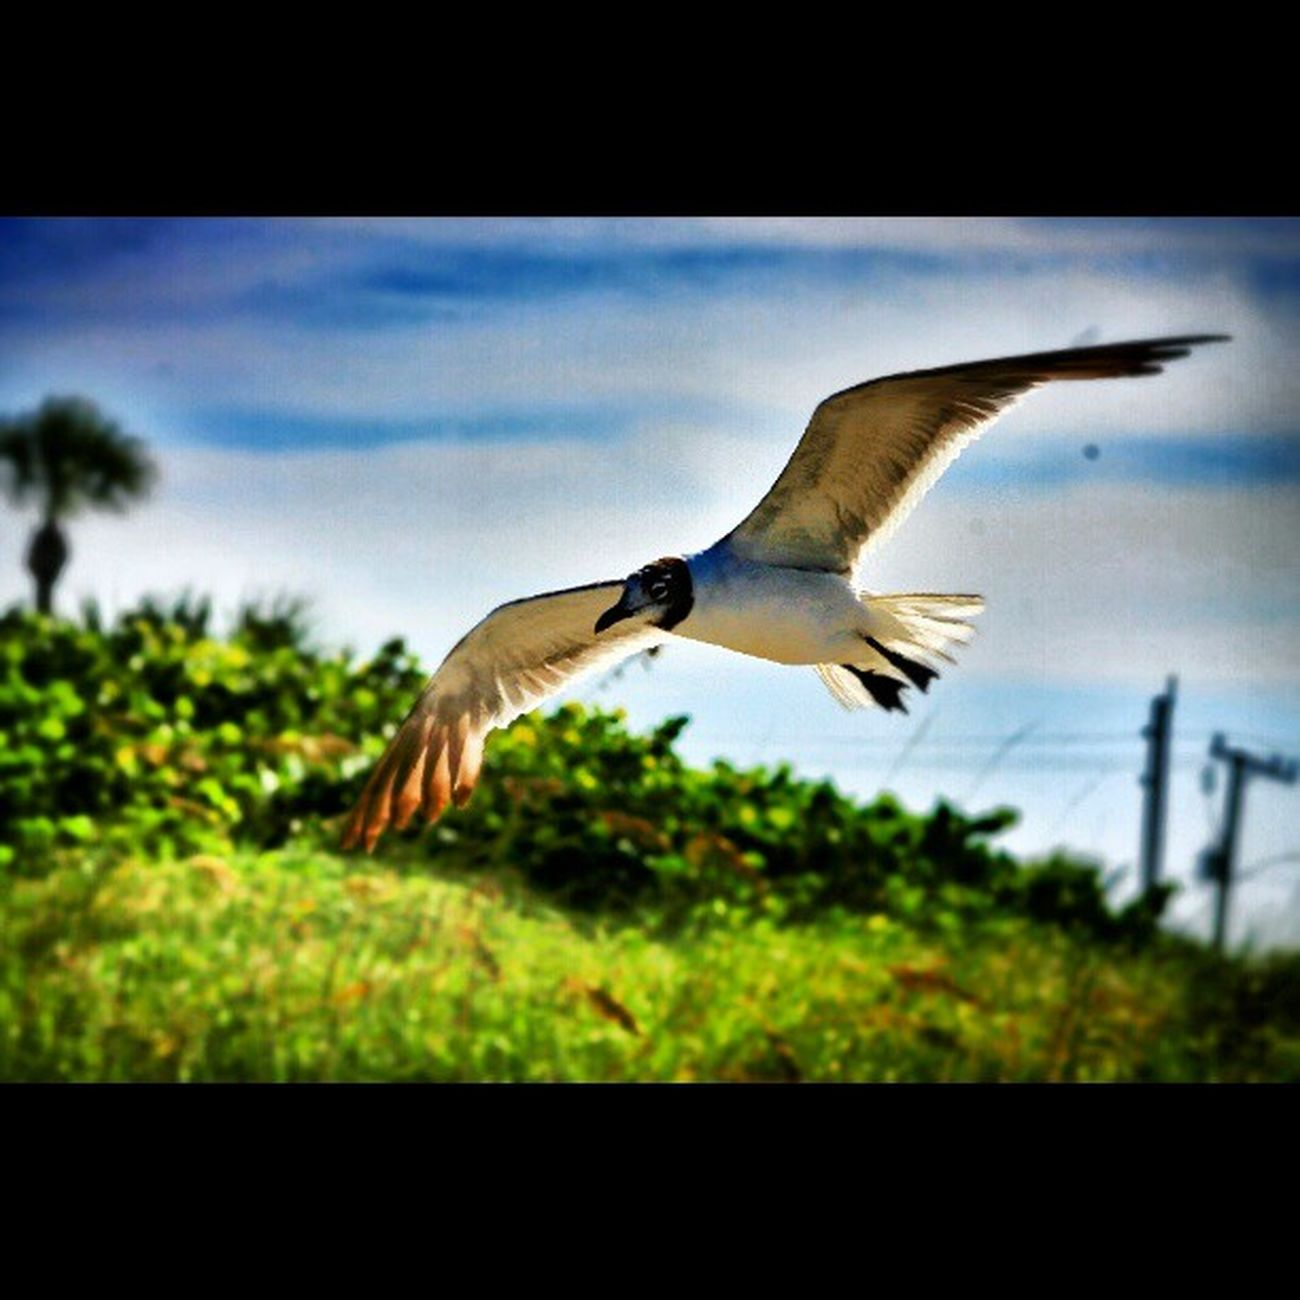 Instalike Instagood Picoftheday Seagull Florida Cocoa beach TFlers tbt awesome badass trill hdr canon accidental shot